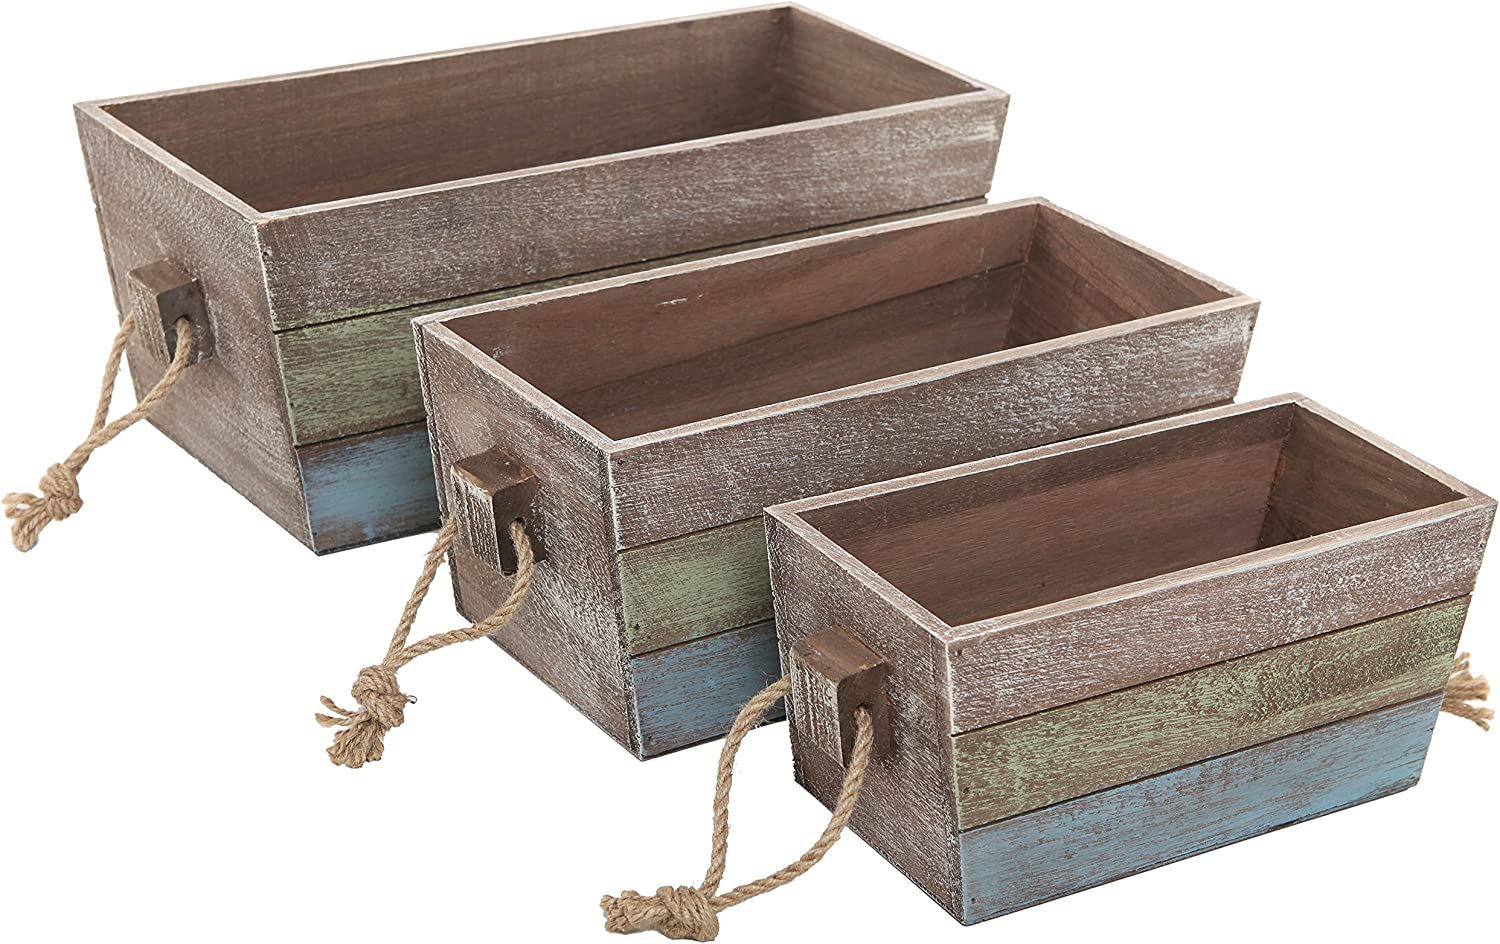 MyGift Nesting Wood Storage Crates, Stripe Design Wood Boxes with Rope Handles, Set of 3, Brown